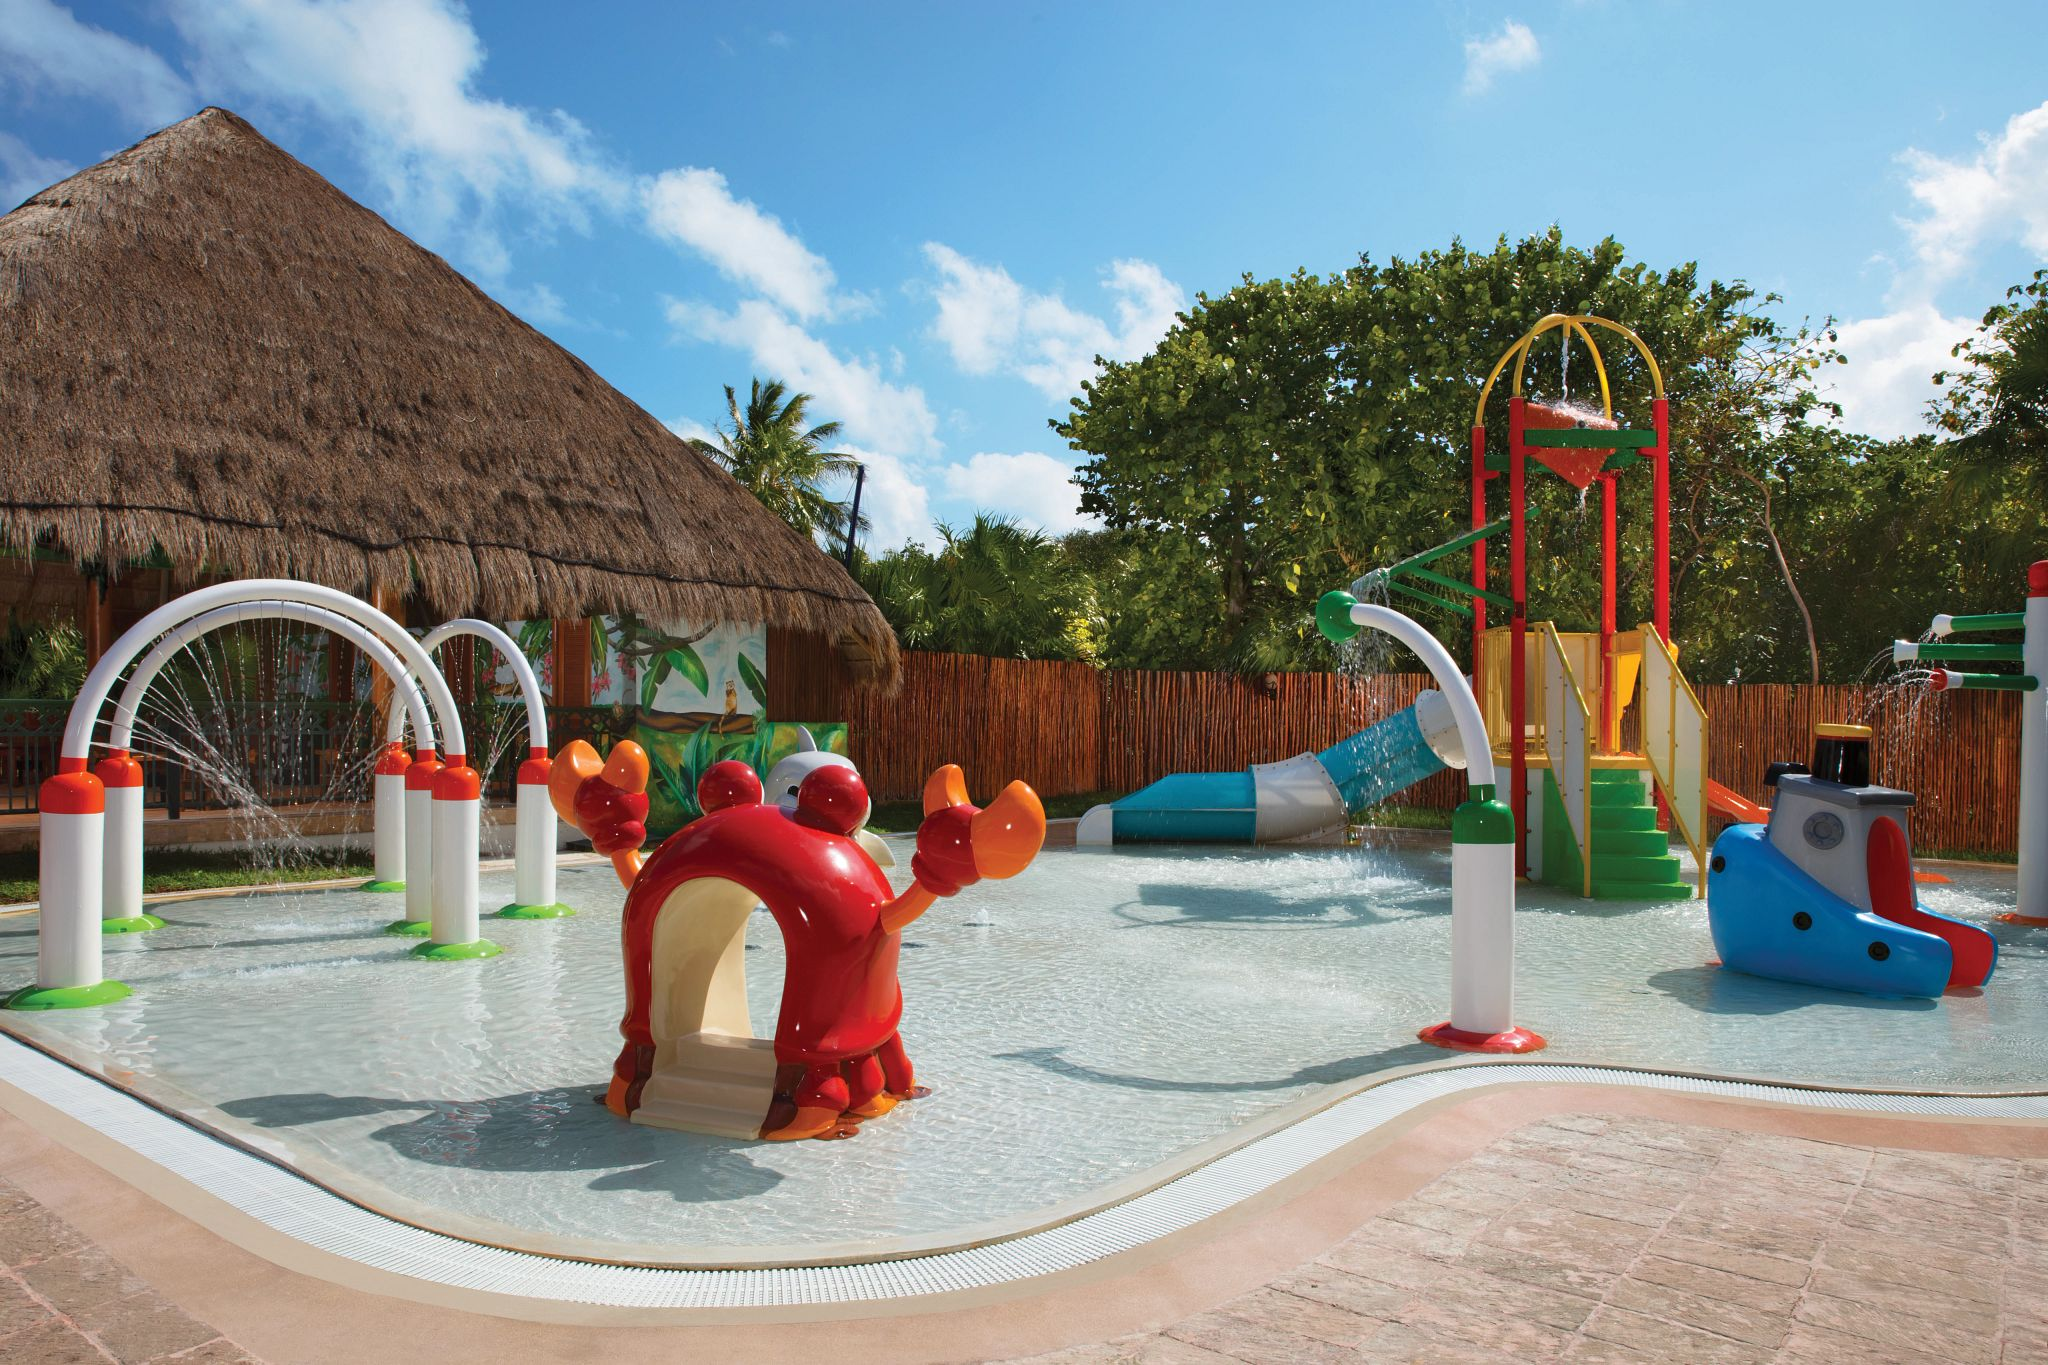 kids splash park with colorful slides and play area